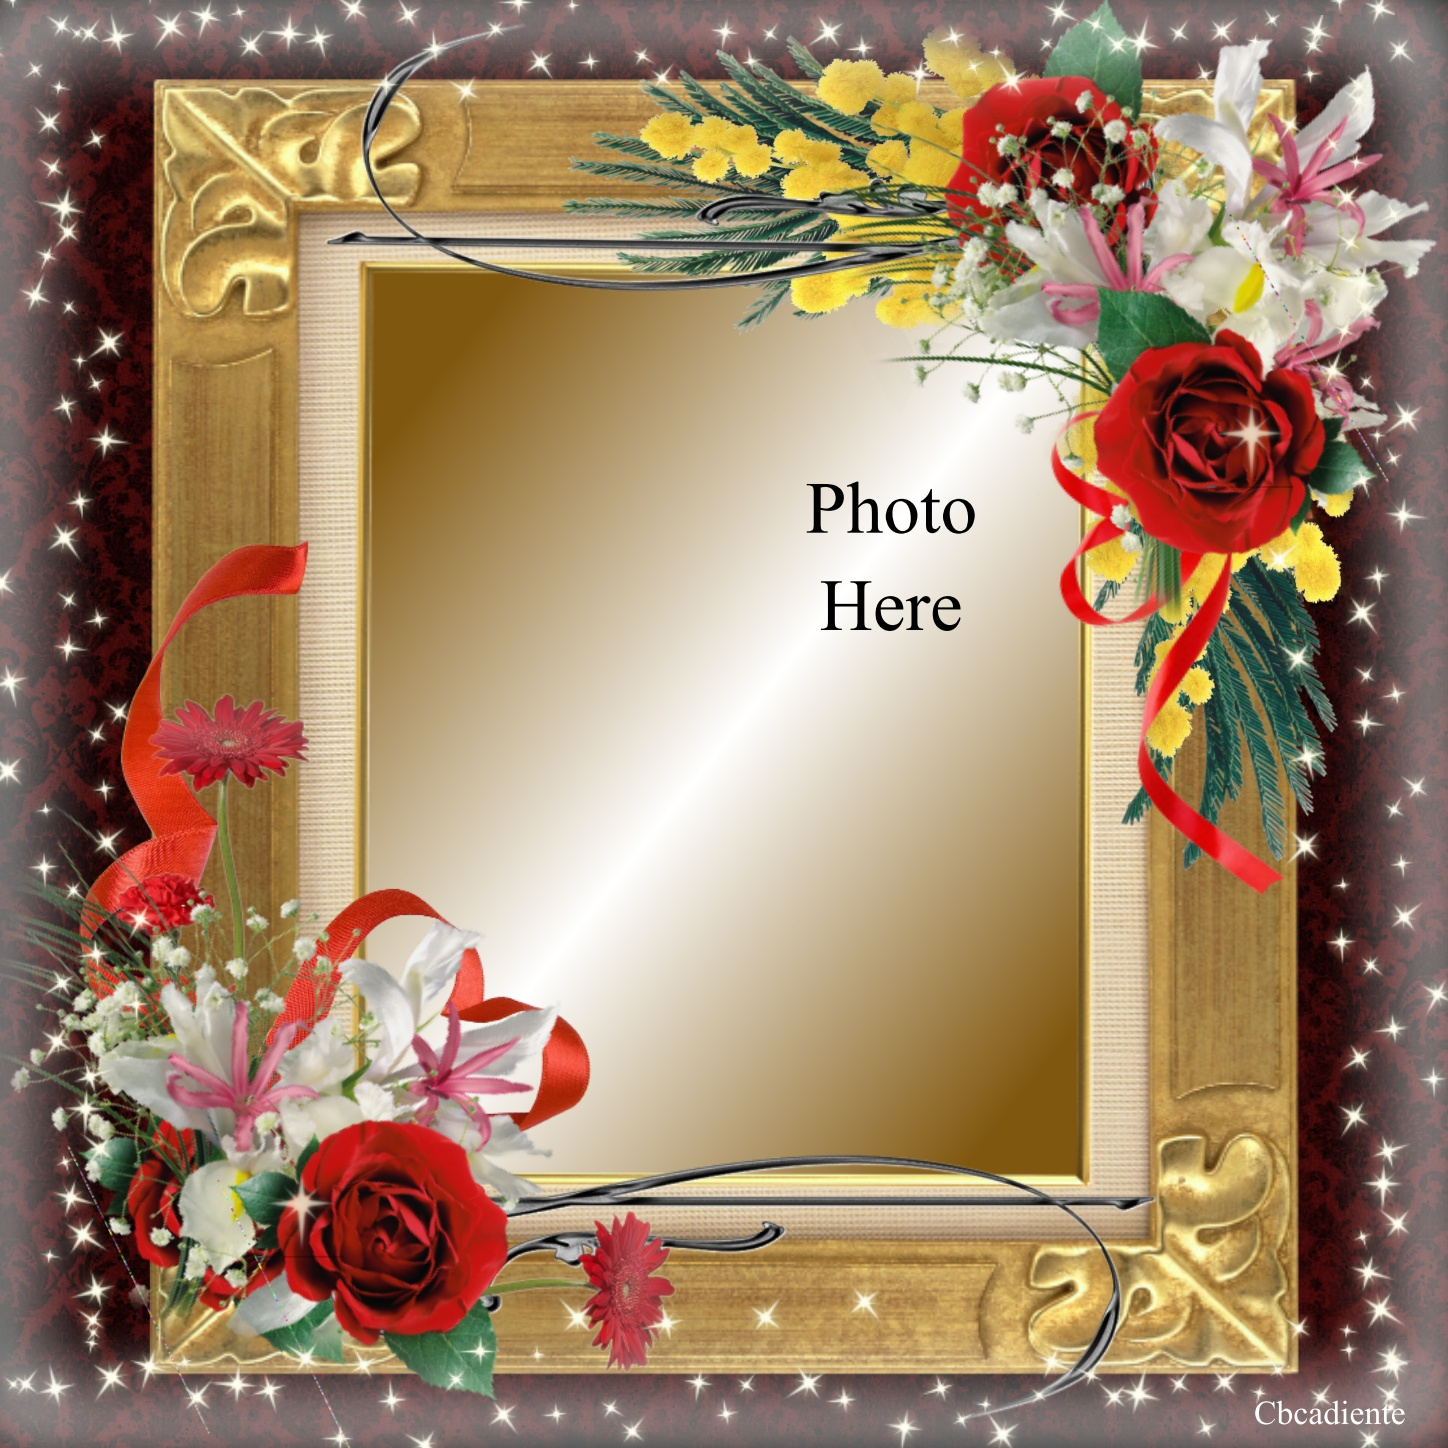 Imikimi Zo - Picture Frames - frame for all Cathy Cadiente picture Frames -  cathy_cadiente